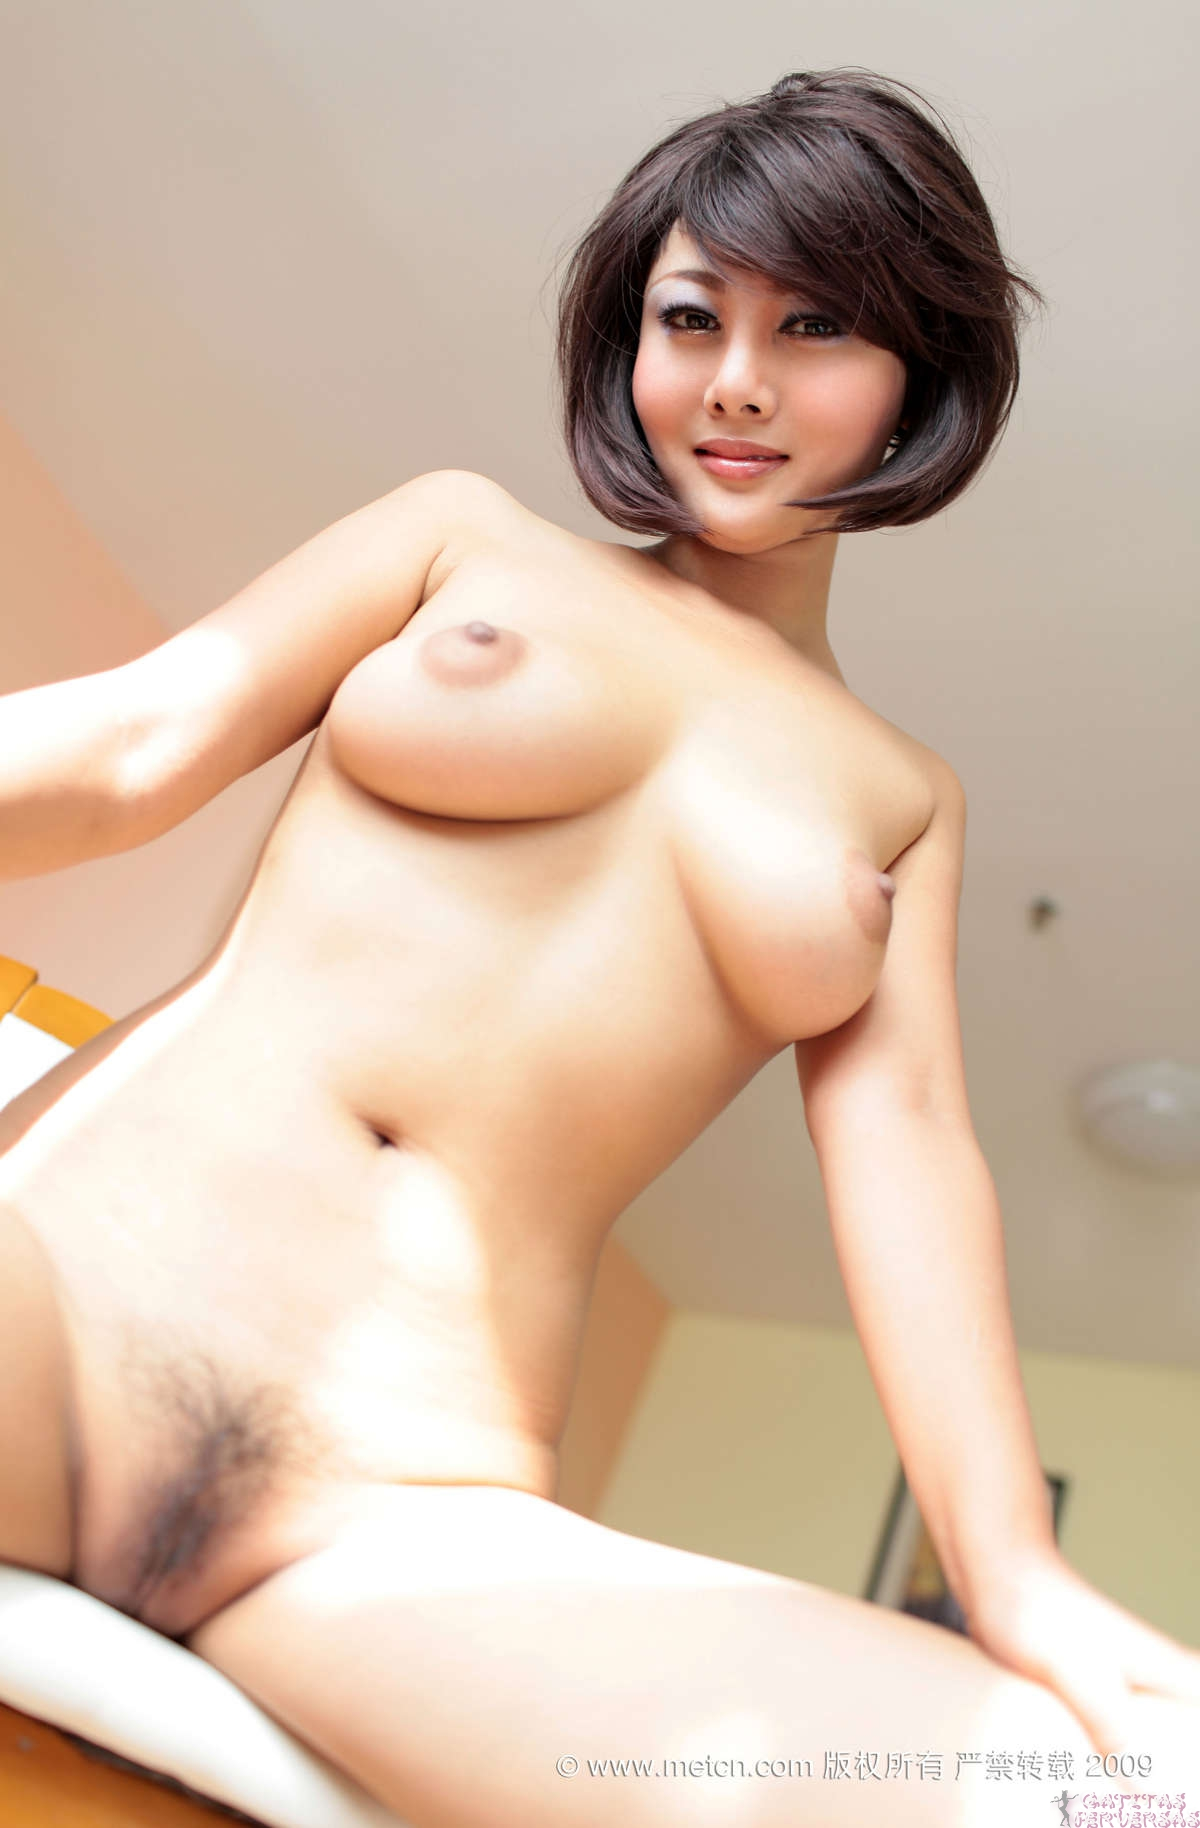 Playing japan nude art photo shaved pussy busty girl That's